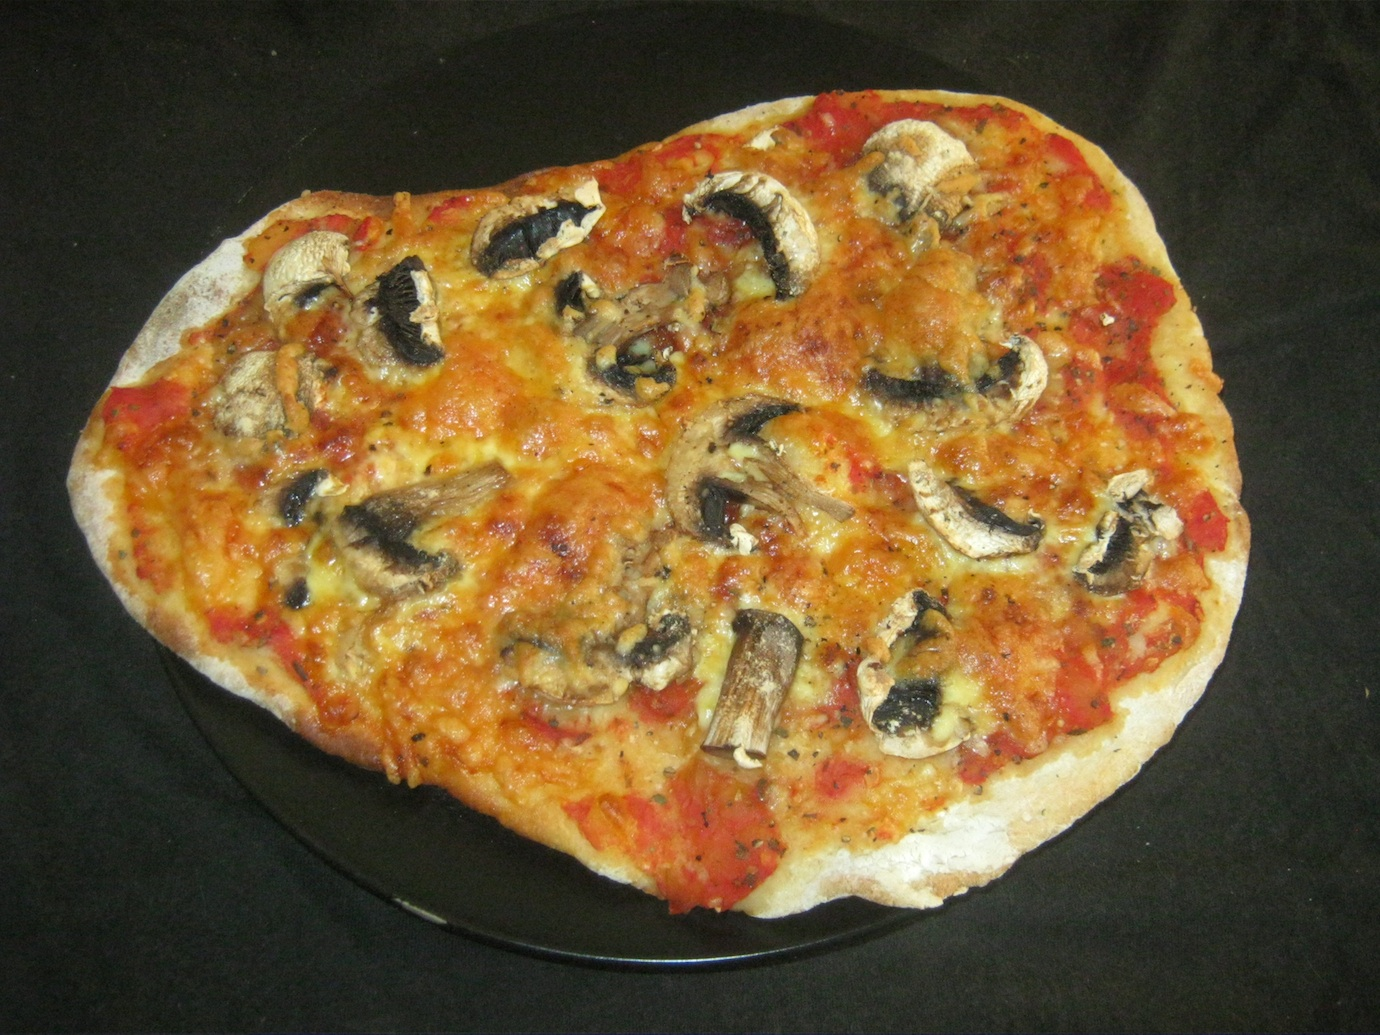 Pizza Funghi served on a black plate